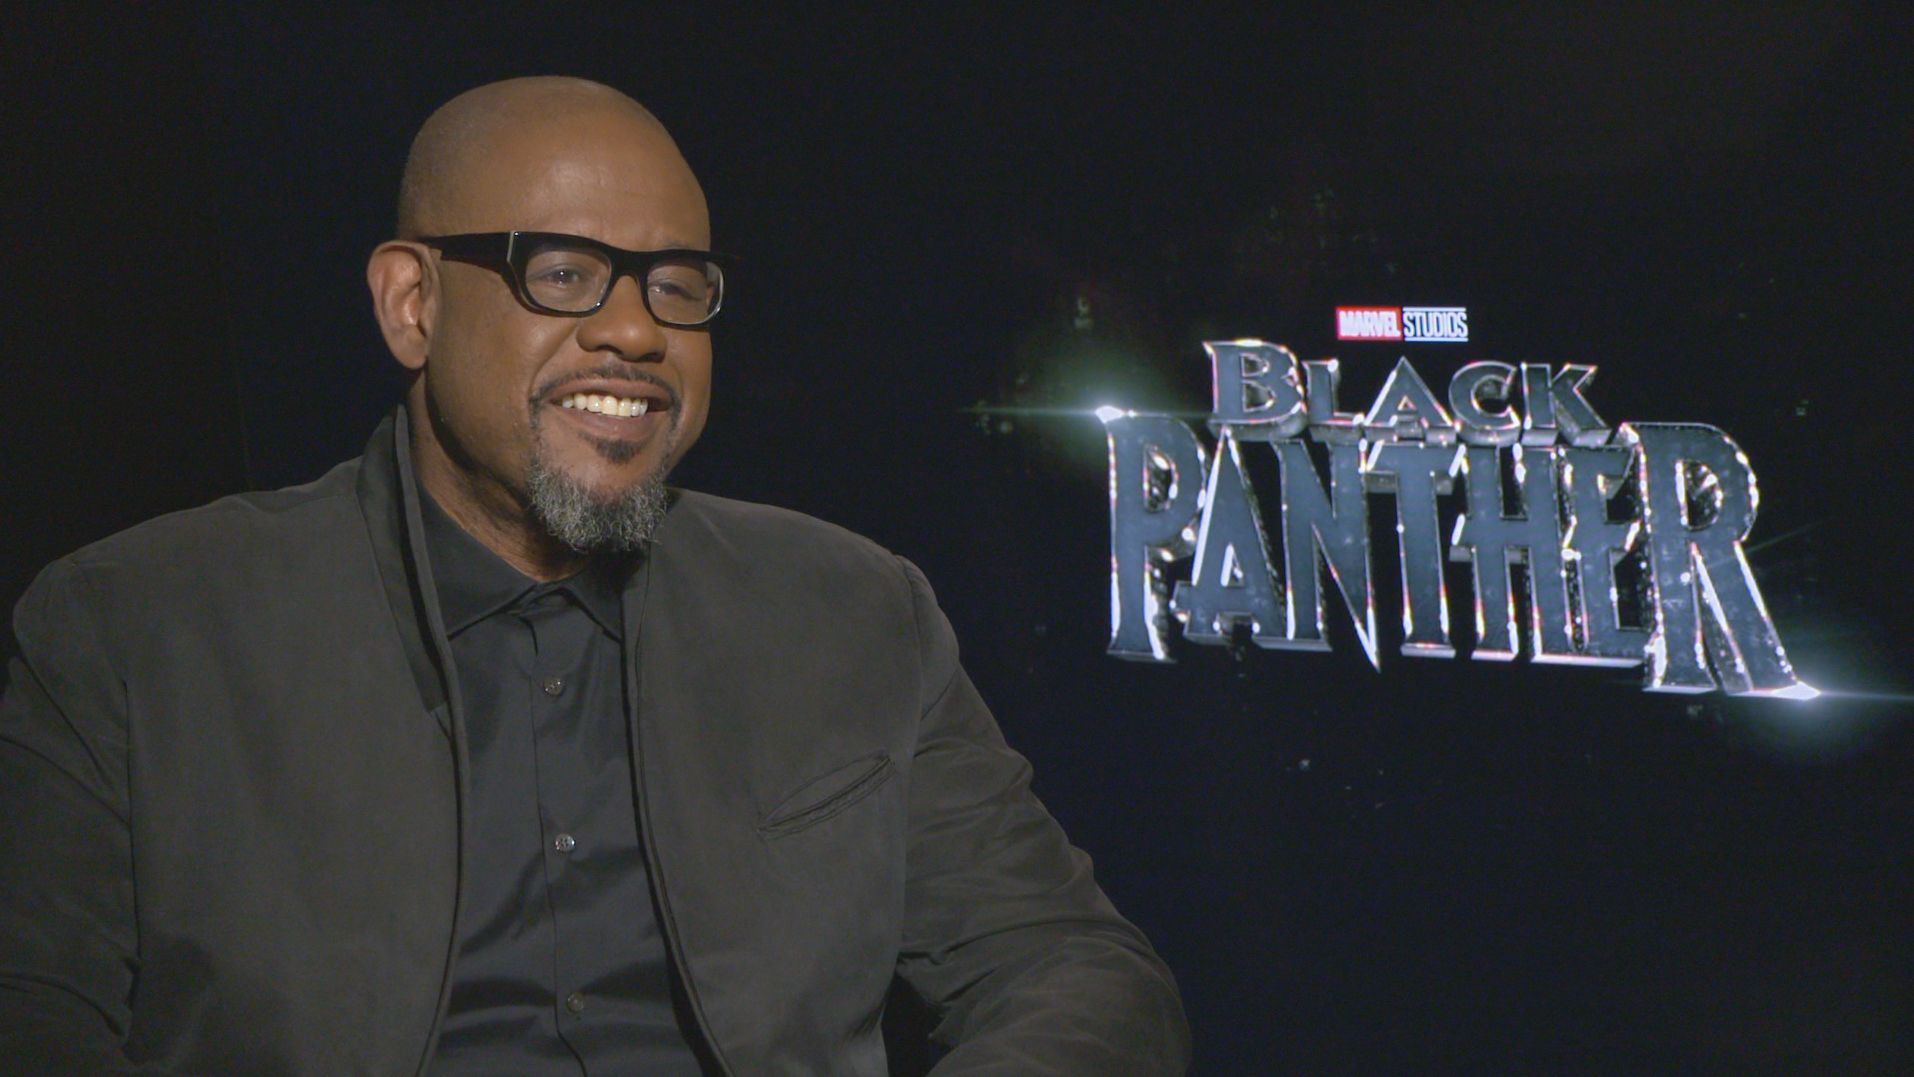 forest whitaker interview black panther - Forest Whitaker on the Powerful Social Messages in 'Black Panther'